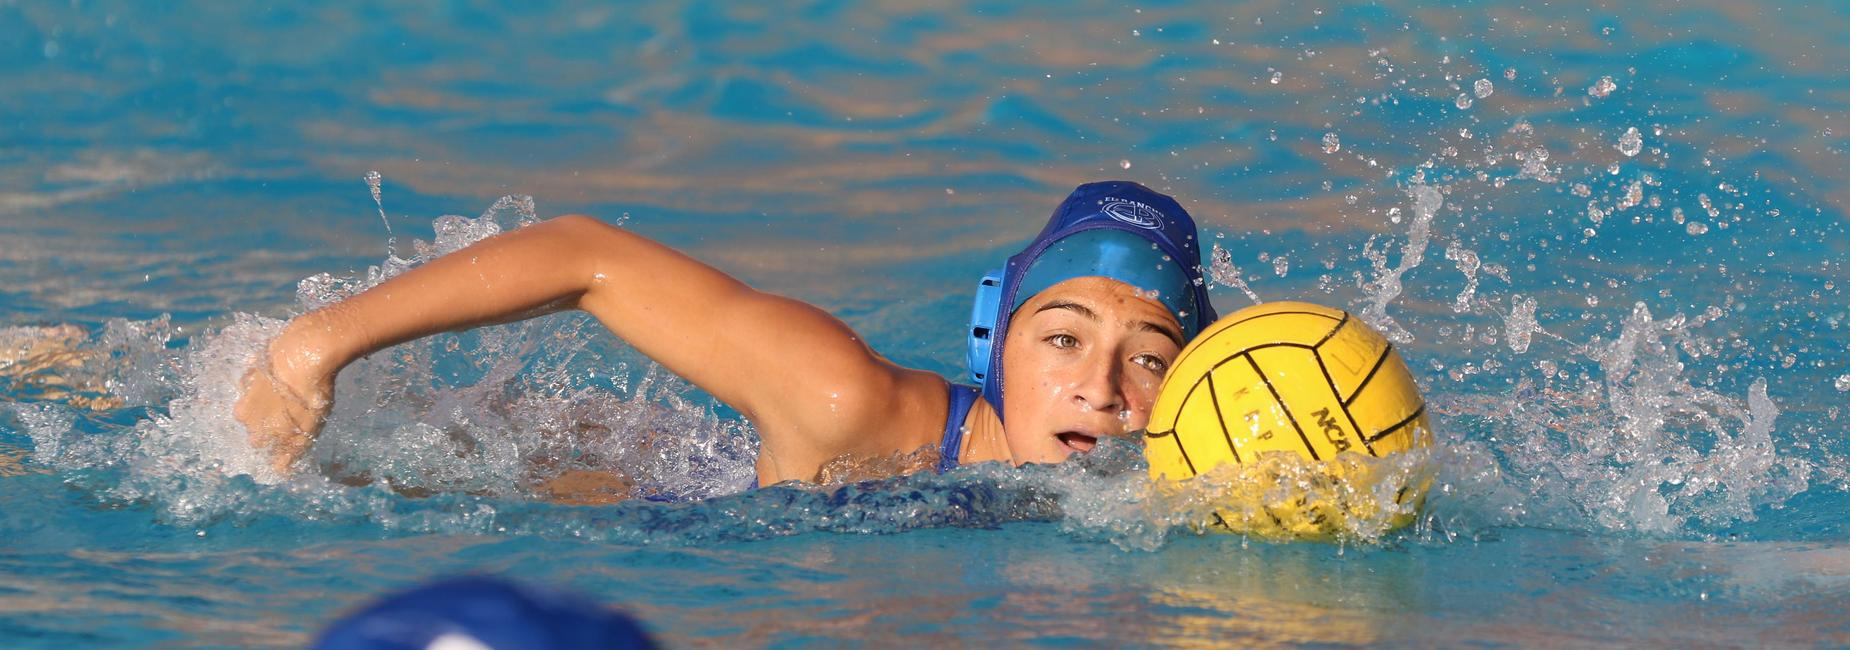 ERHS Girls Waterpolo